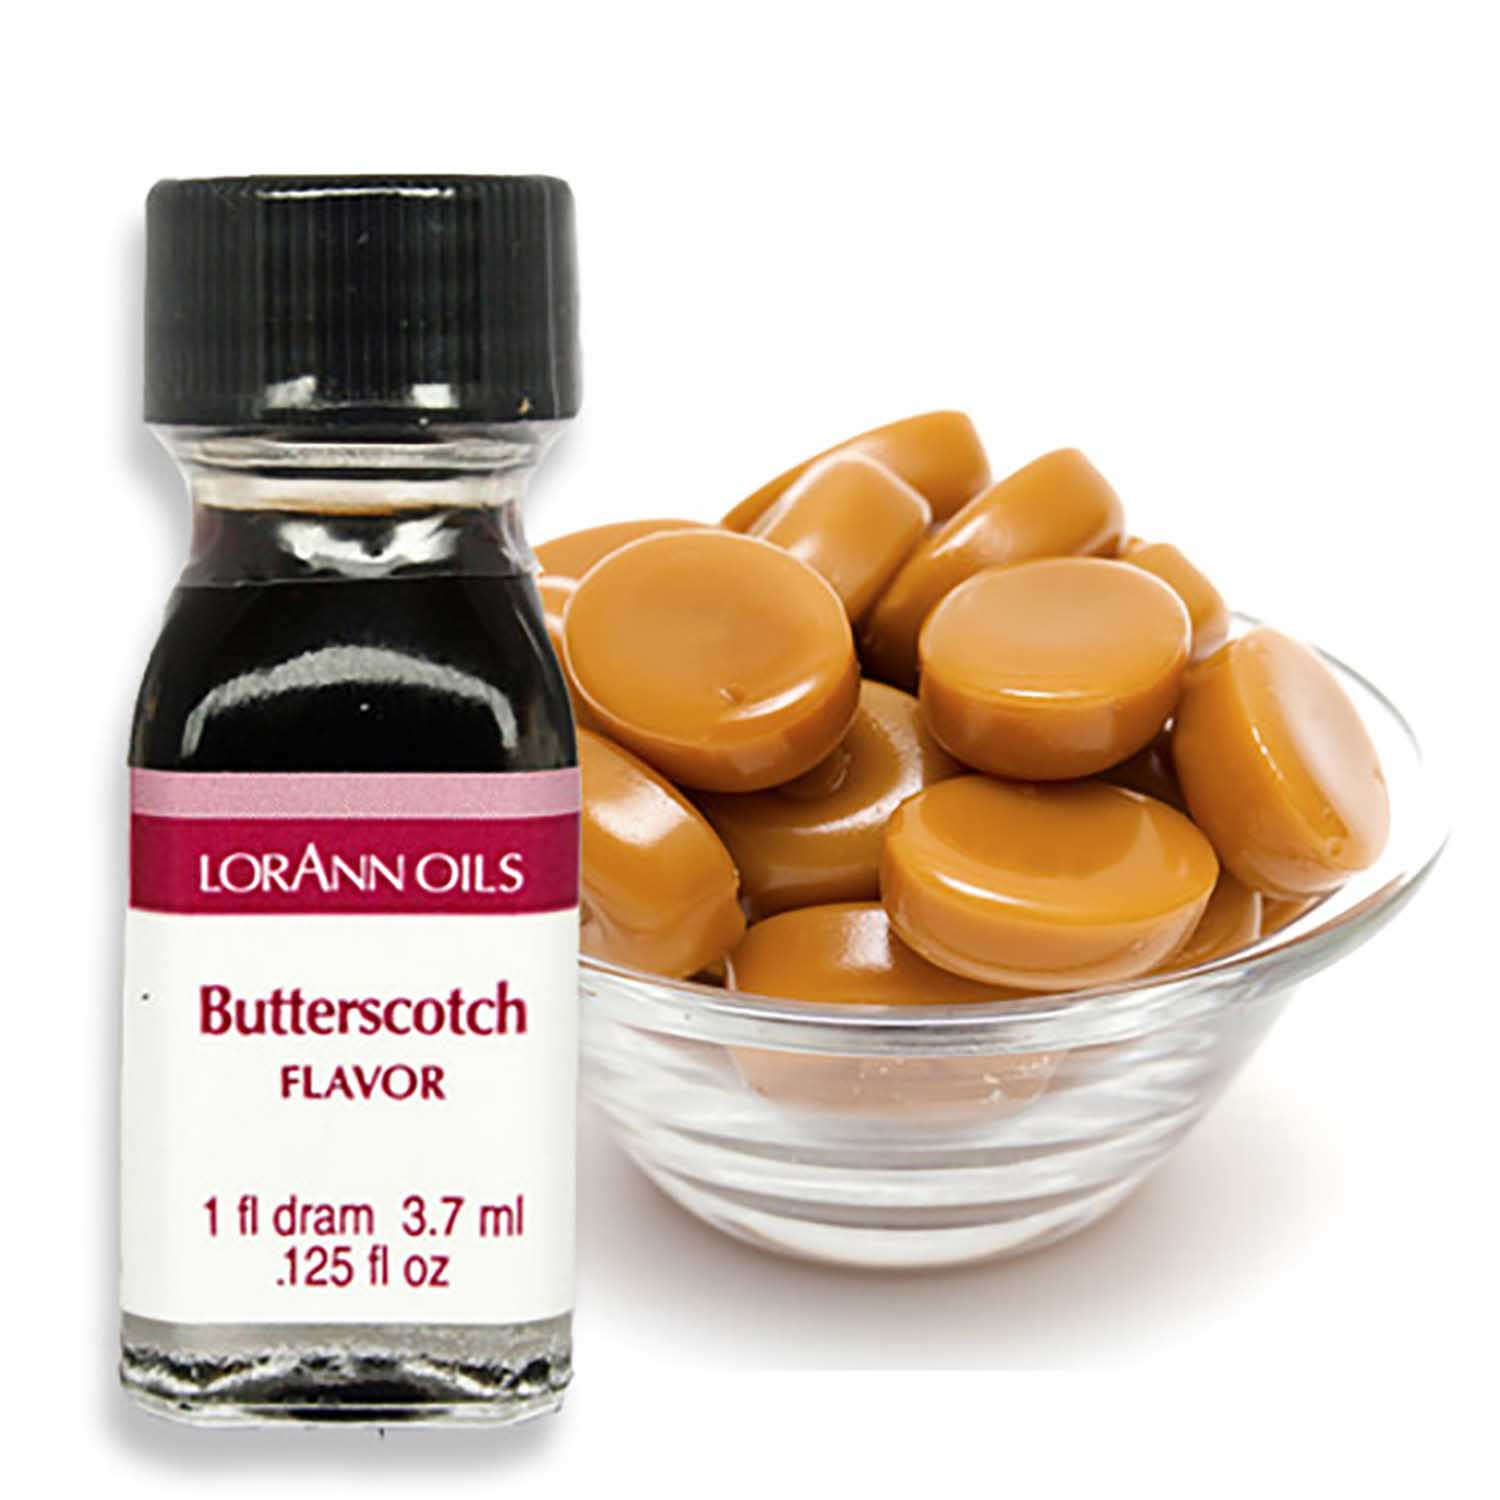 Butterscotch Super-Strength Flavor